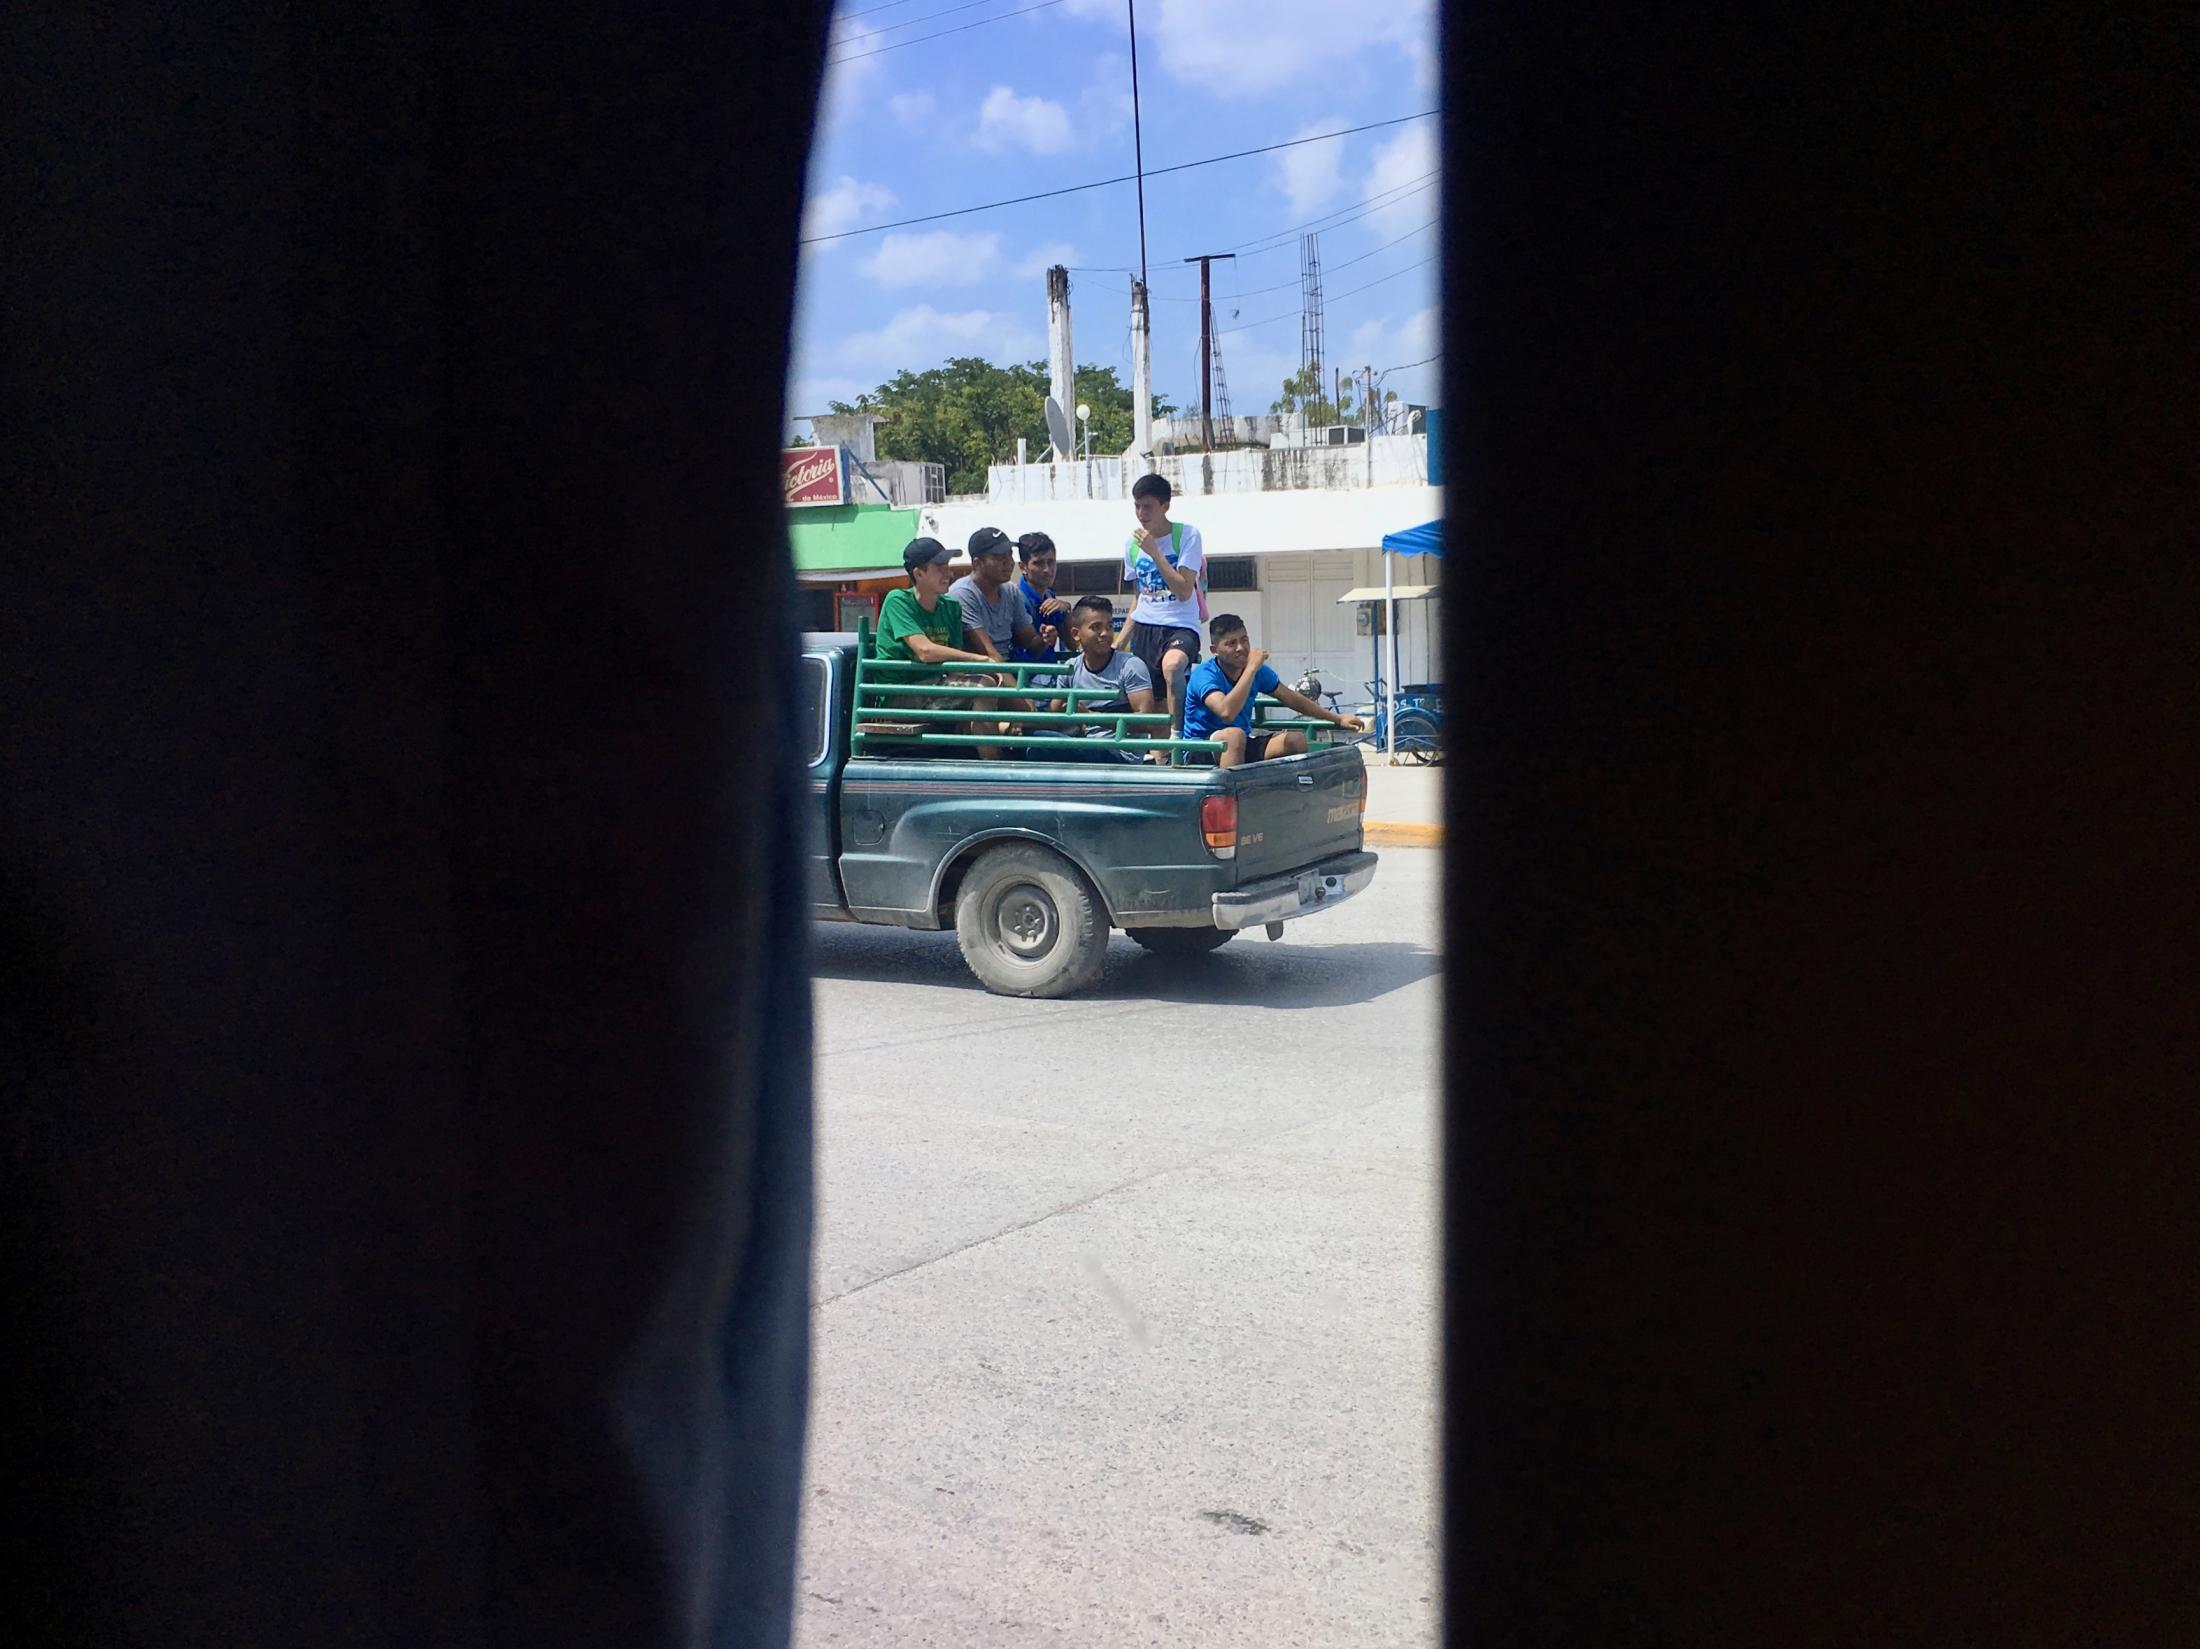 Estación Manuel, Tamaulipas, México. 2017. View from a bus to the back of a truck loaded with people. I was traveling back to where I live from visiting my parents during summer break.